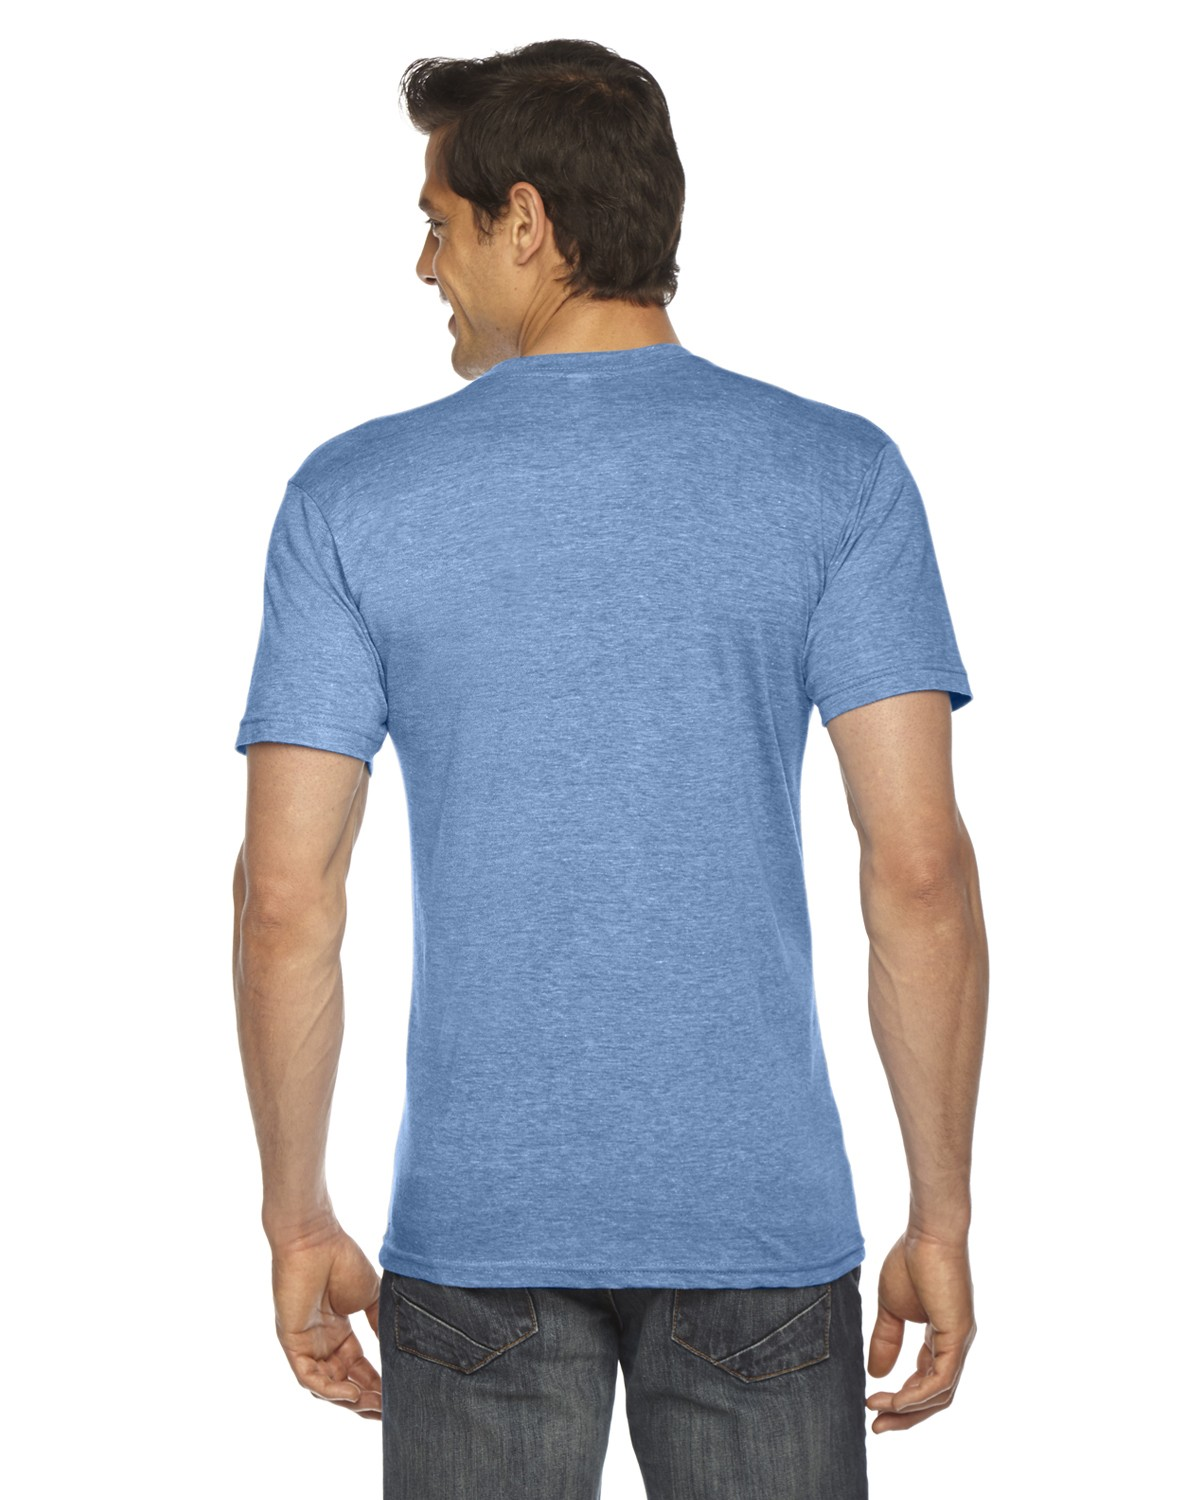 TR461W American Apparel ATHLETIC BLUE